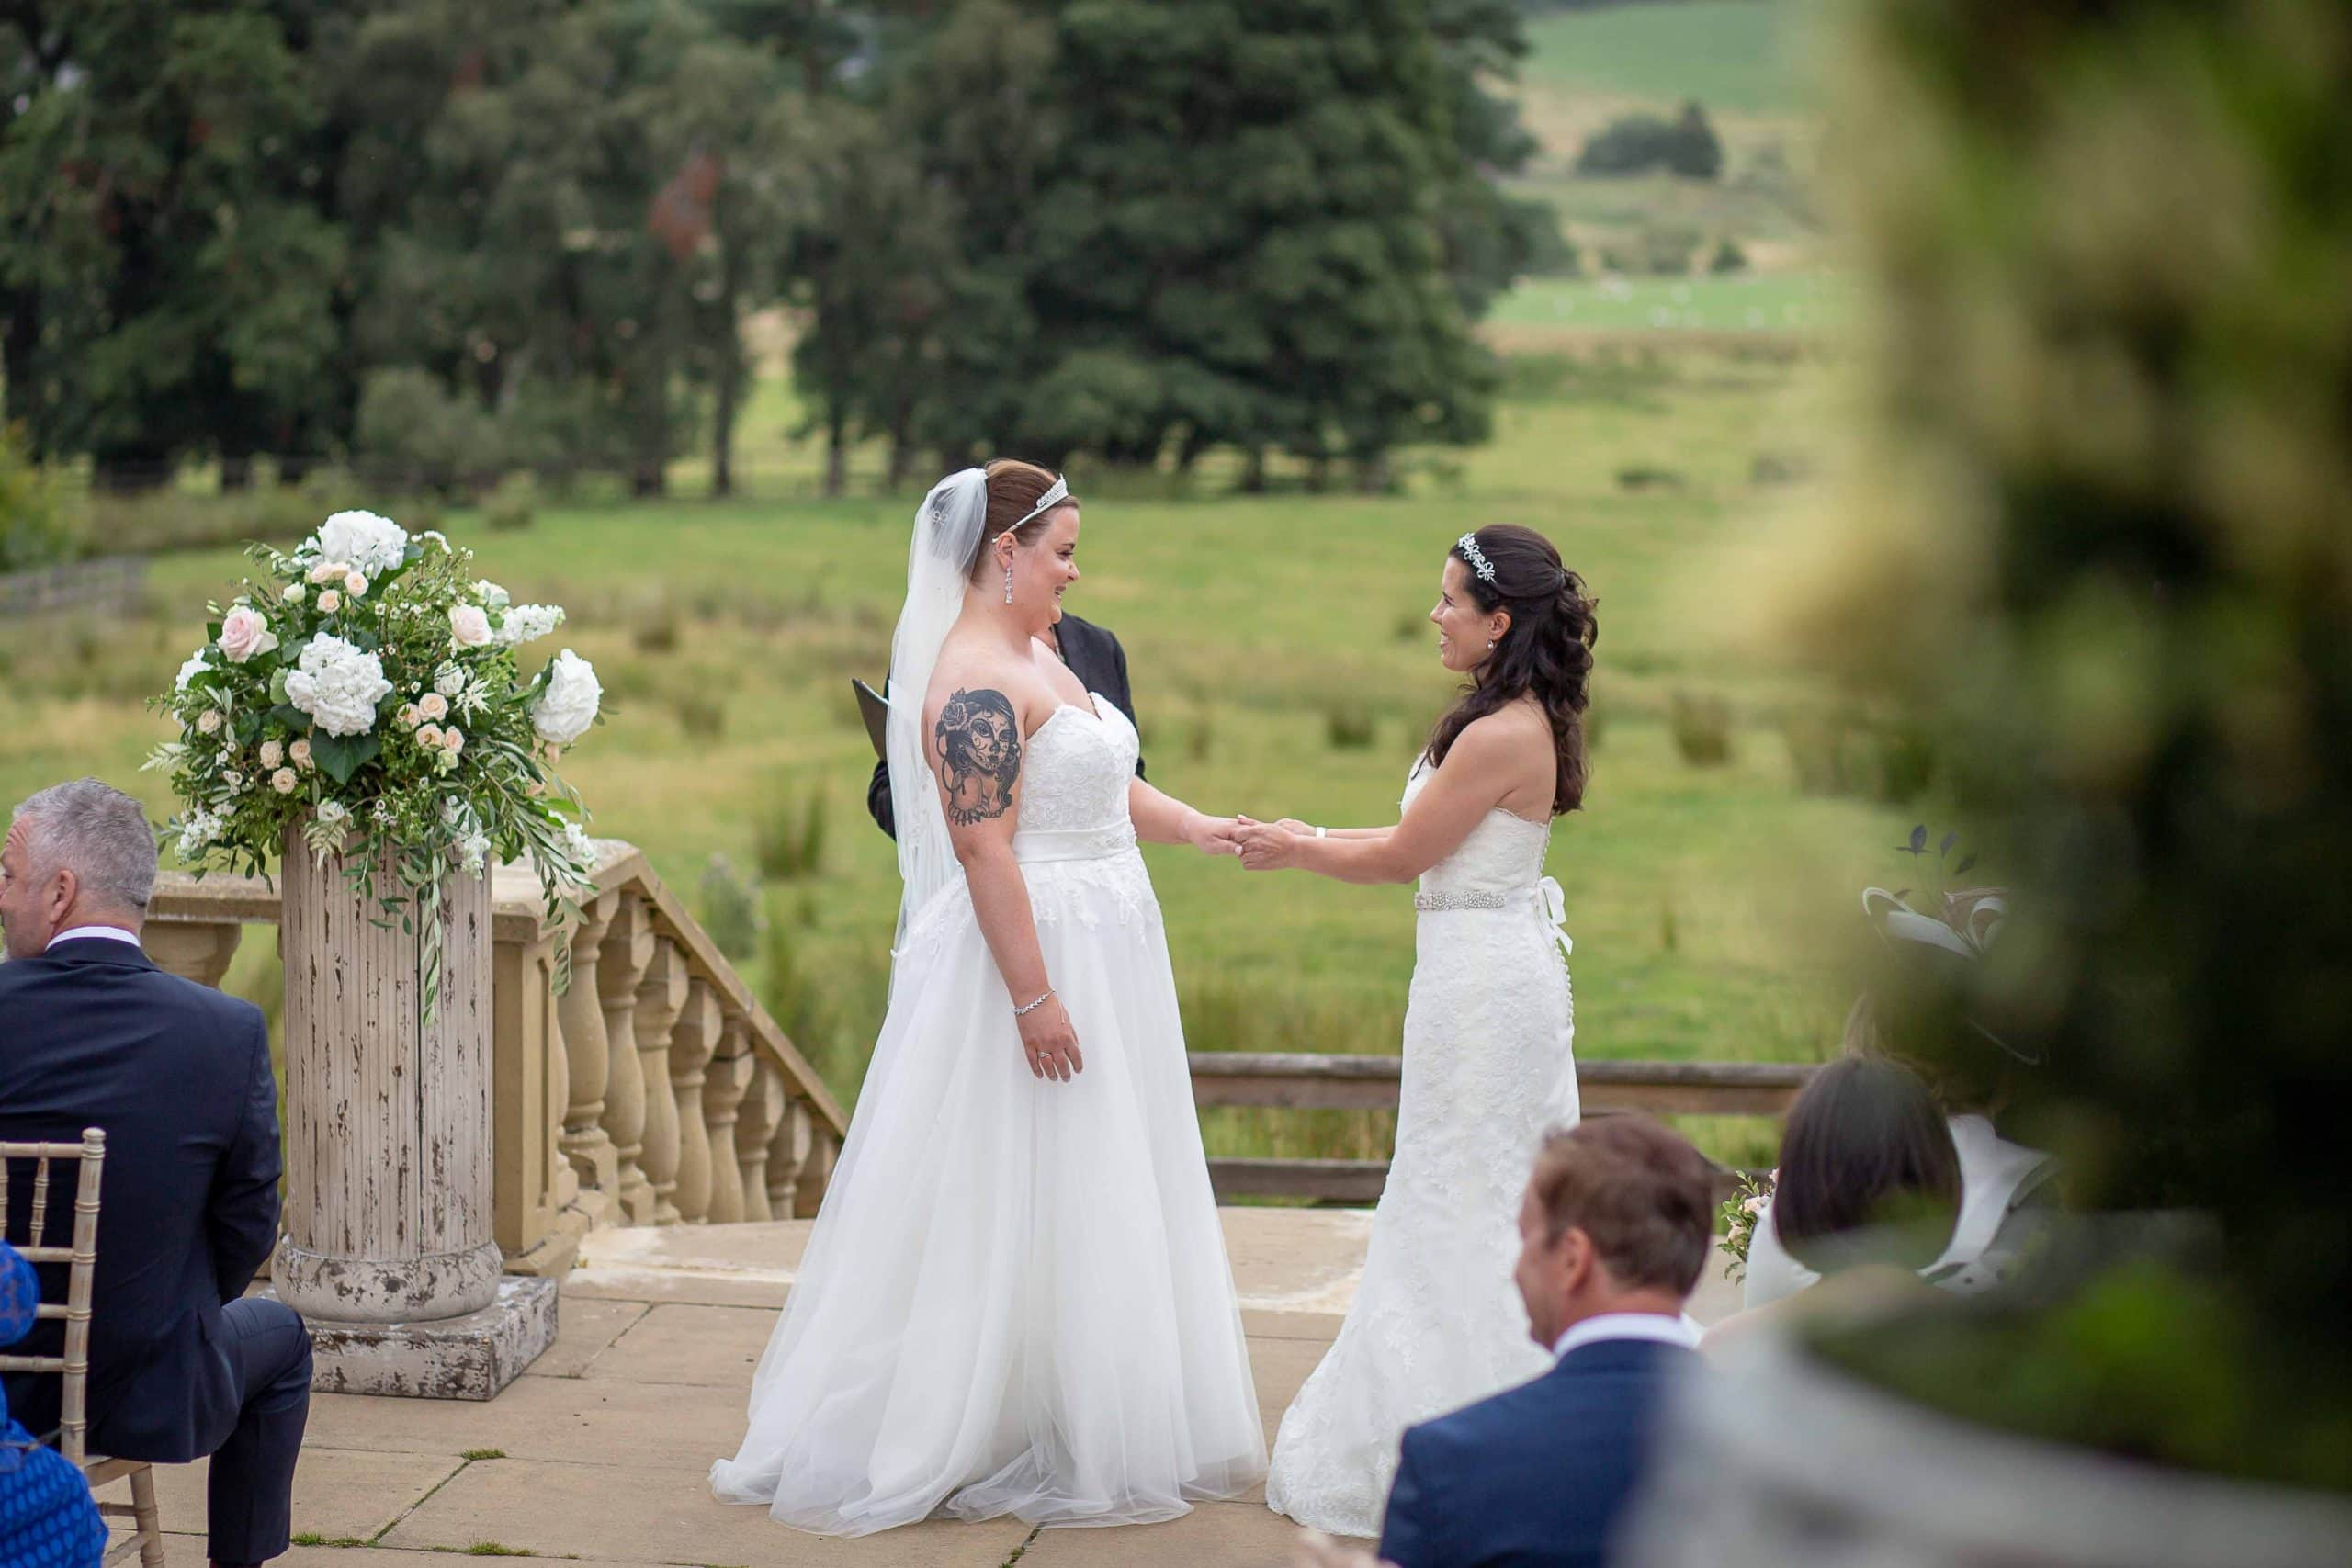 Wedding ceremony at Woodhill Hall